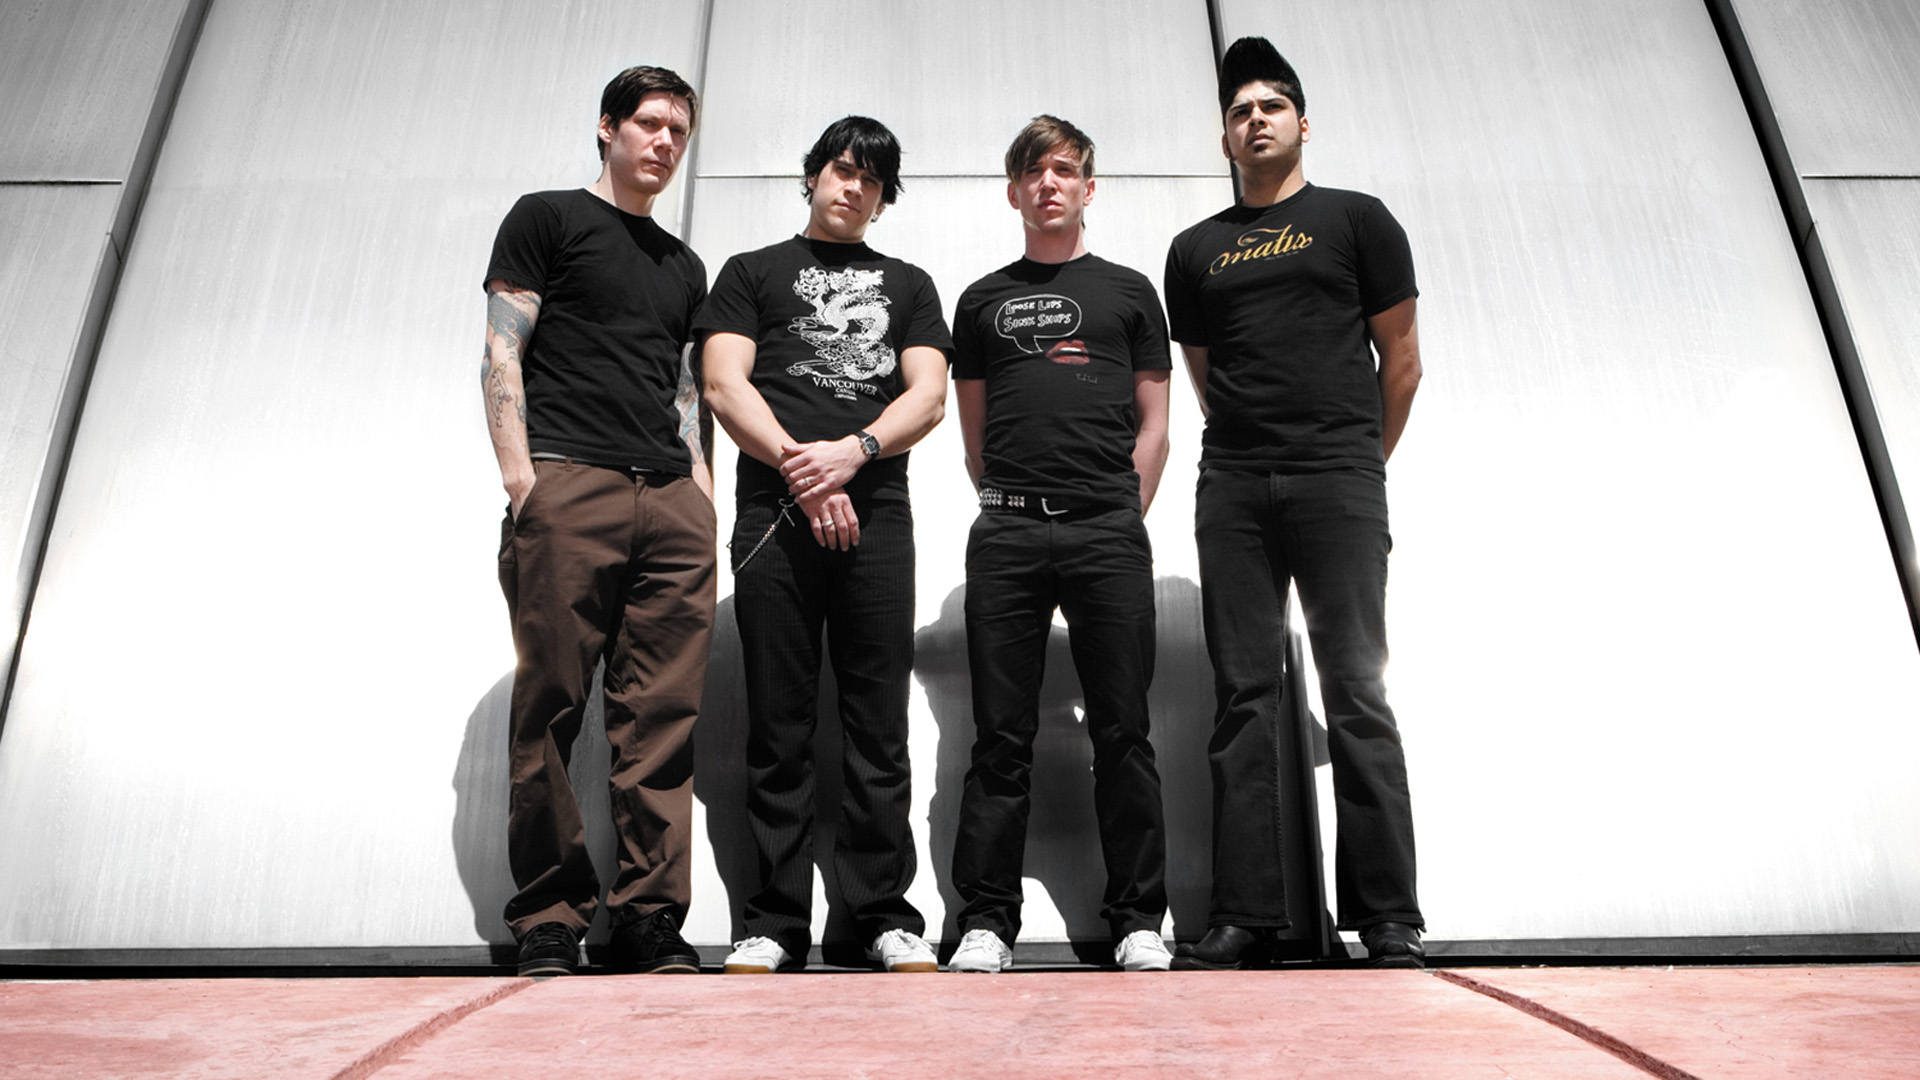 Turn Your Back av Billy Talent